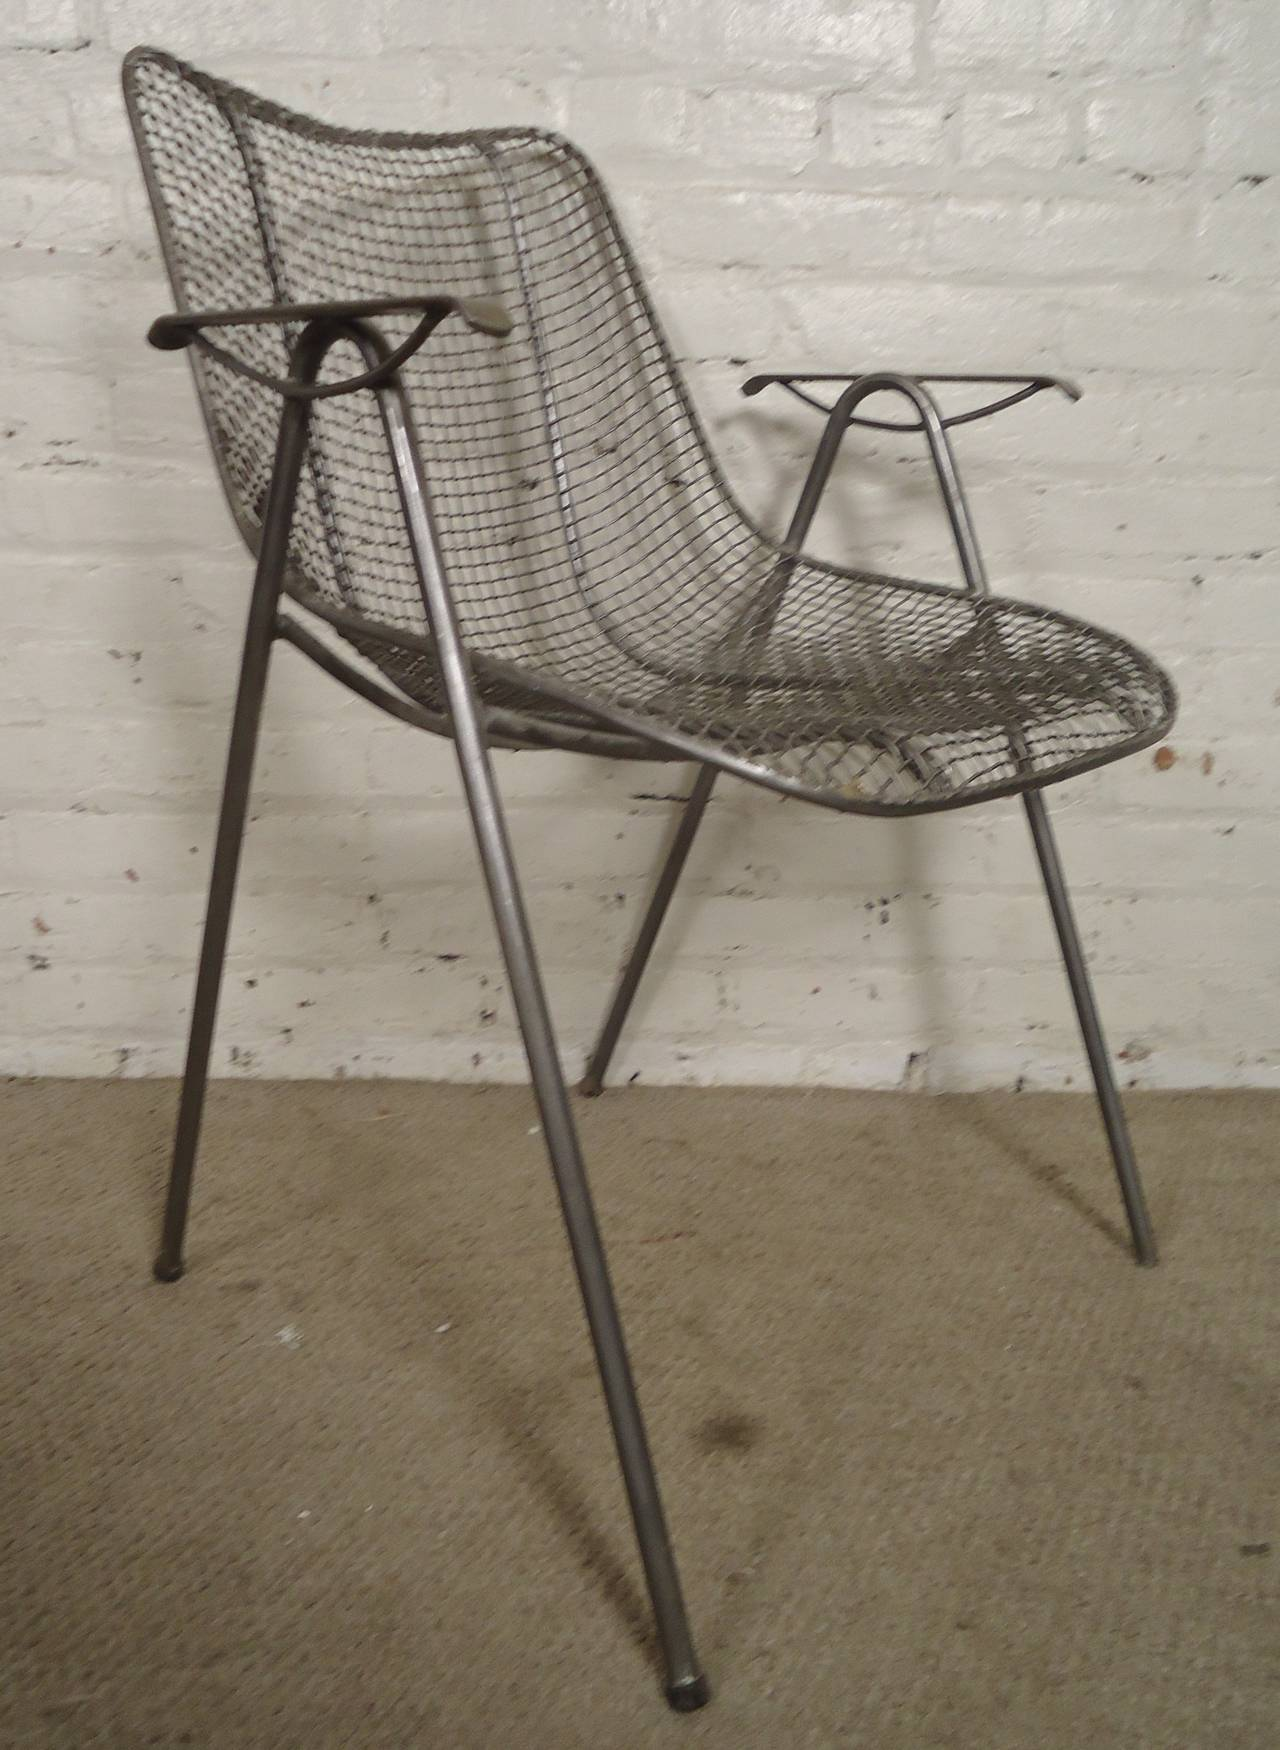 Charmant Mid 20th Century Mid Century Modern Wire Arm Chair For Sale